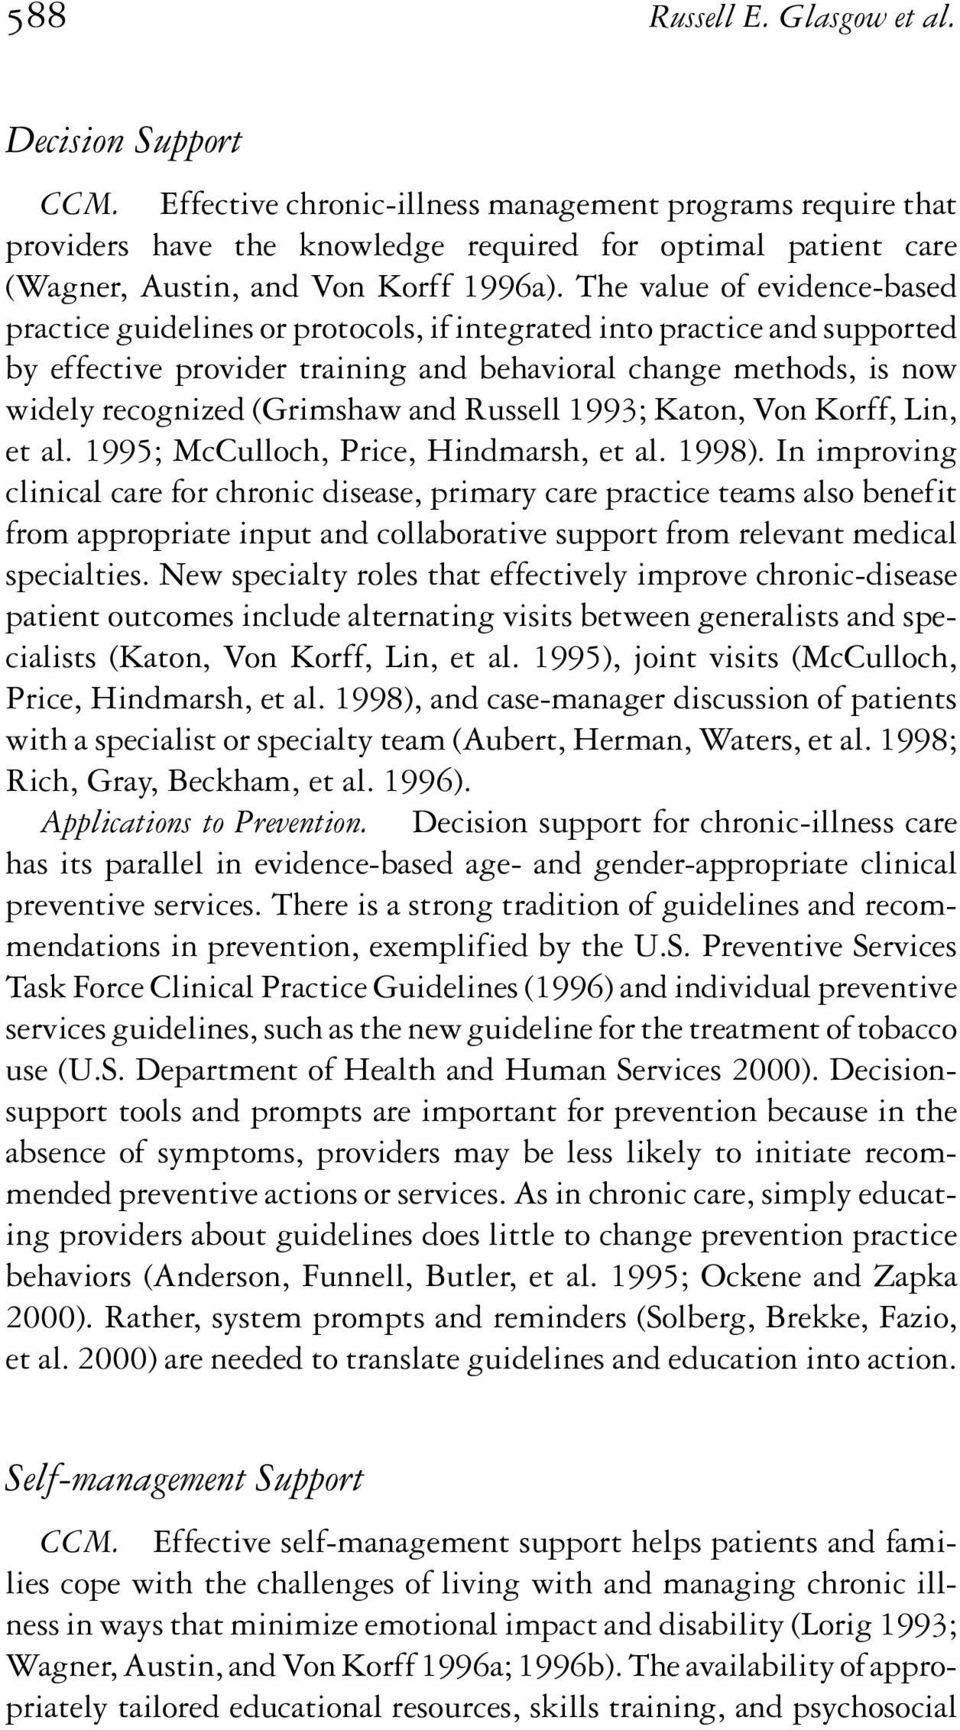 The value of evidence-based practice guidelines or protocols, if integrated into practice and supported by effective provider training and behavioral change methods, is now widely recognized